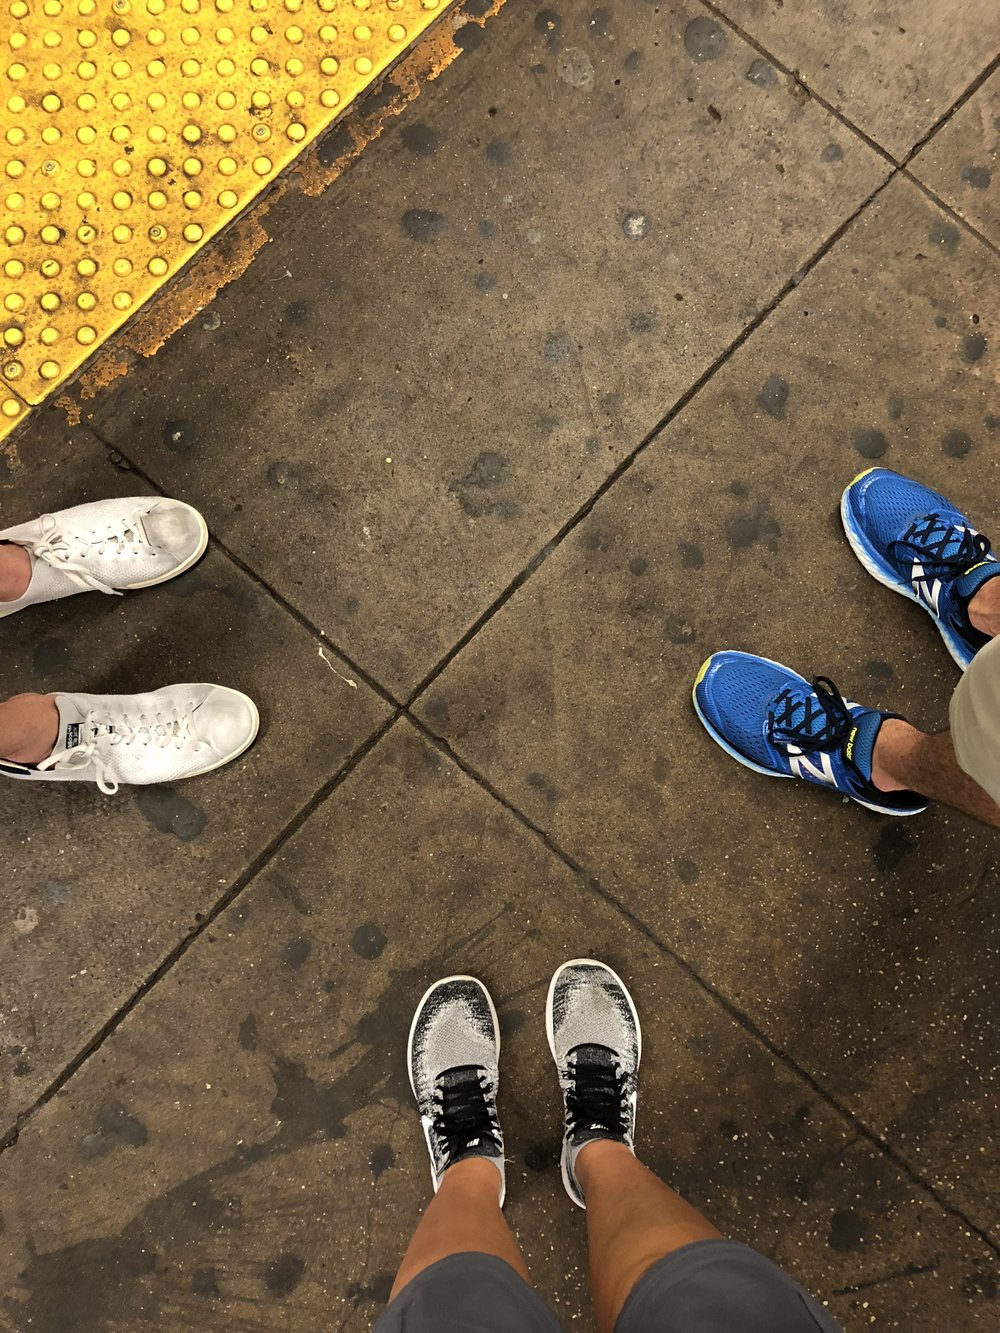 Swass: the sweat that runs down your back and settles into the crack of your ass.  - We kicked off the summer with a trip to NYC with our oldest. It was HOT. No big deal if you're not spending hours walking in the suffocating city or waiting for a subway train in stagnant, recycled air.  Still ... It was an unforgettable trip filled with laughter, new adventures, amazing food, and swass. (Sweat running down our asses ALL day long)